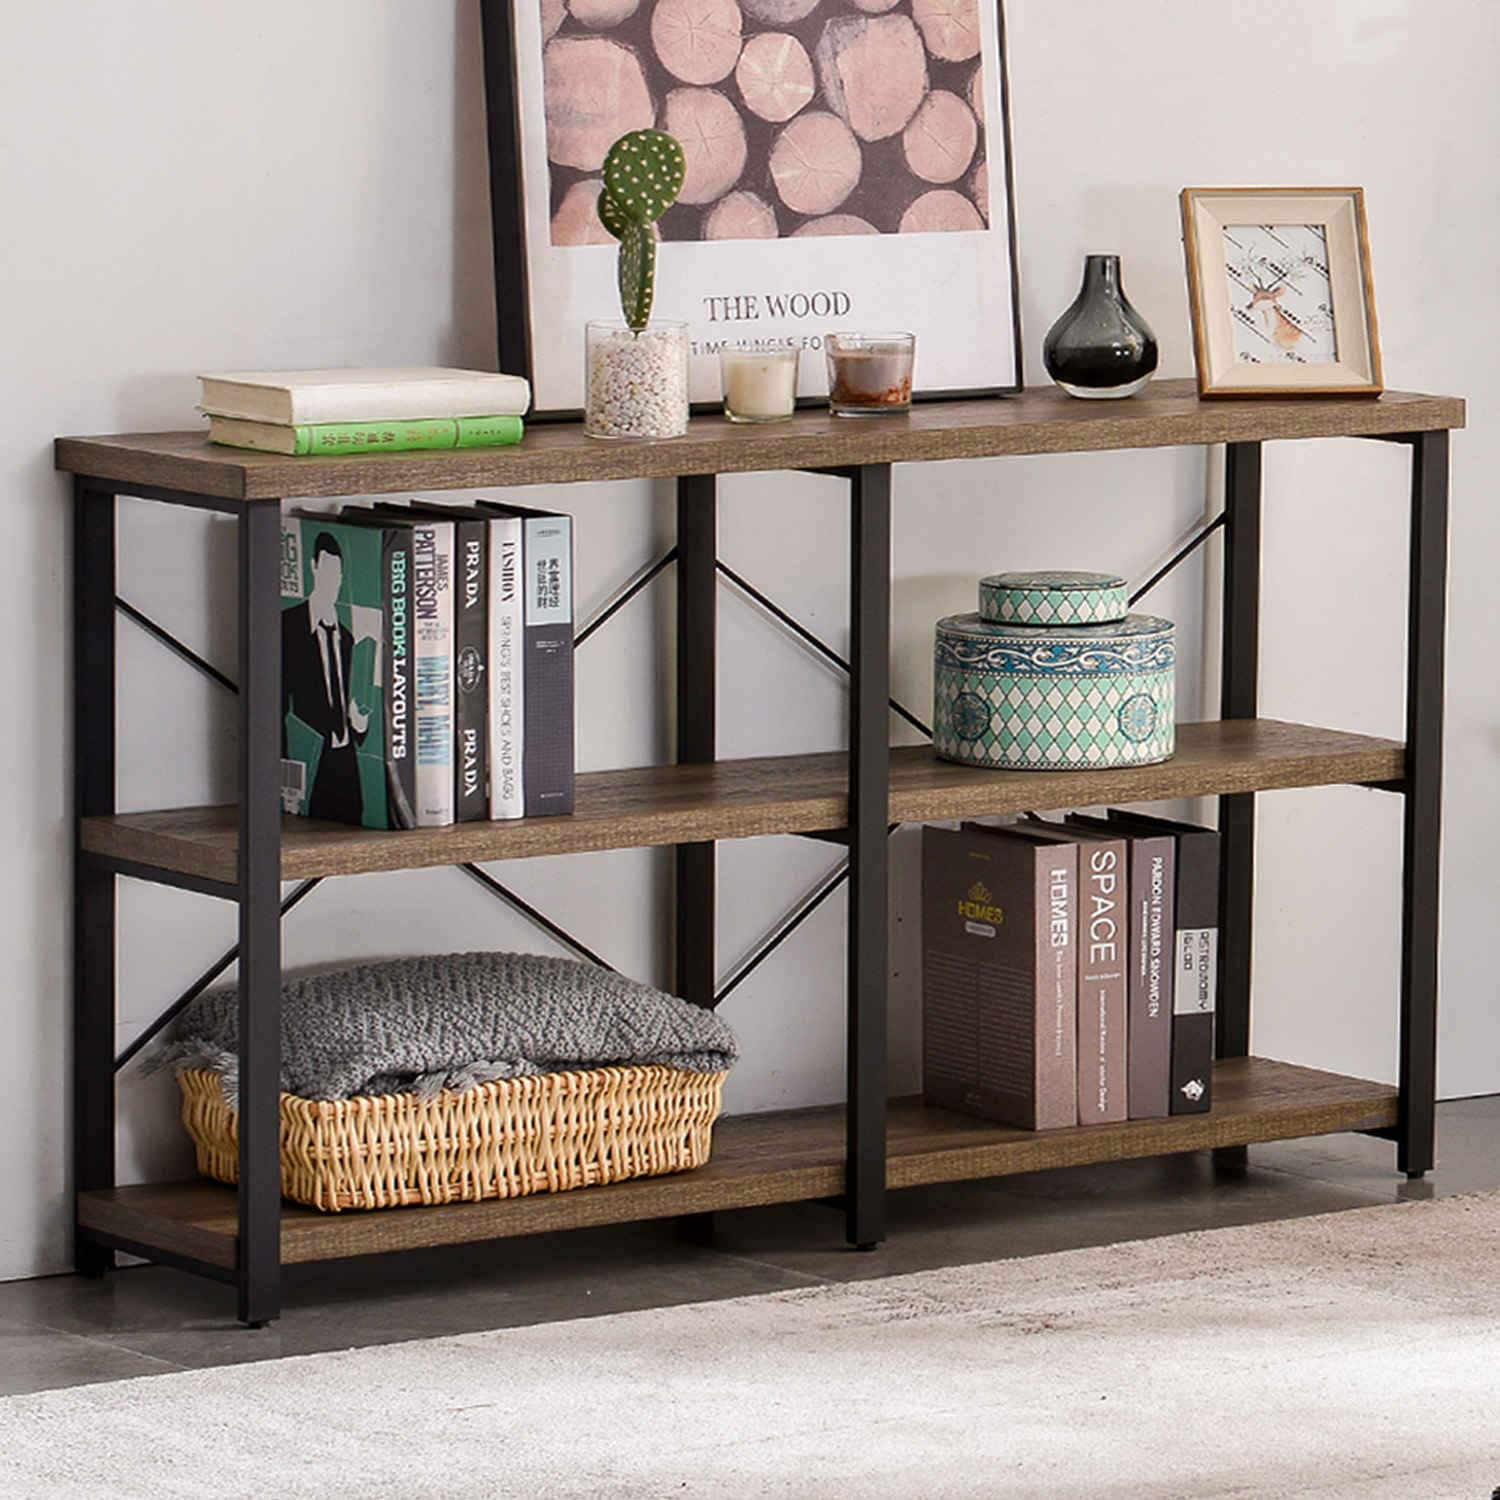 GRELO HOME Rustic Entryway Table, Tv Console Table with Storage Shelf,Metal and Wood Entry Table, Industrial Sofa Table for Living Room, Oak 55 Inch by GRELO HOME